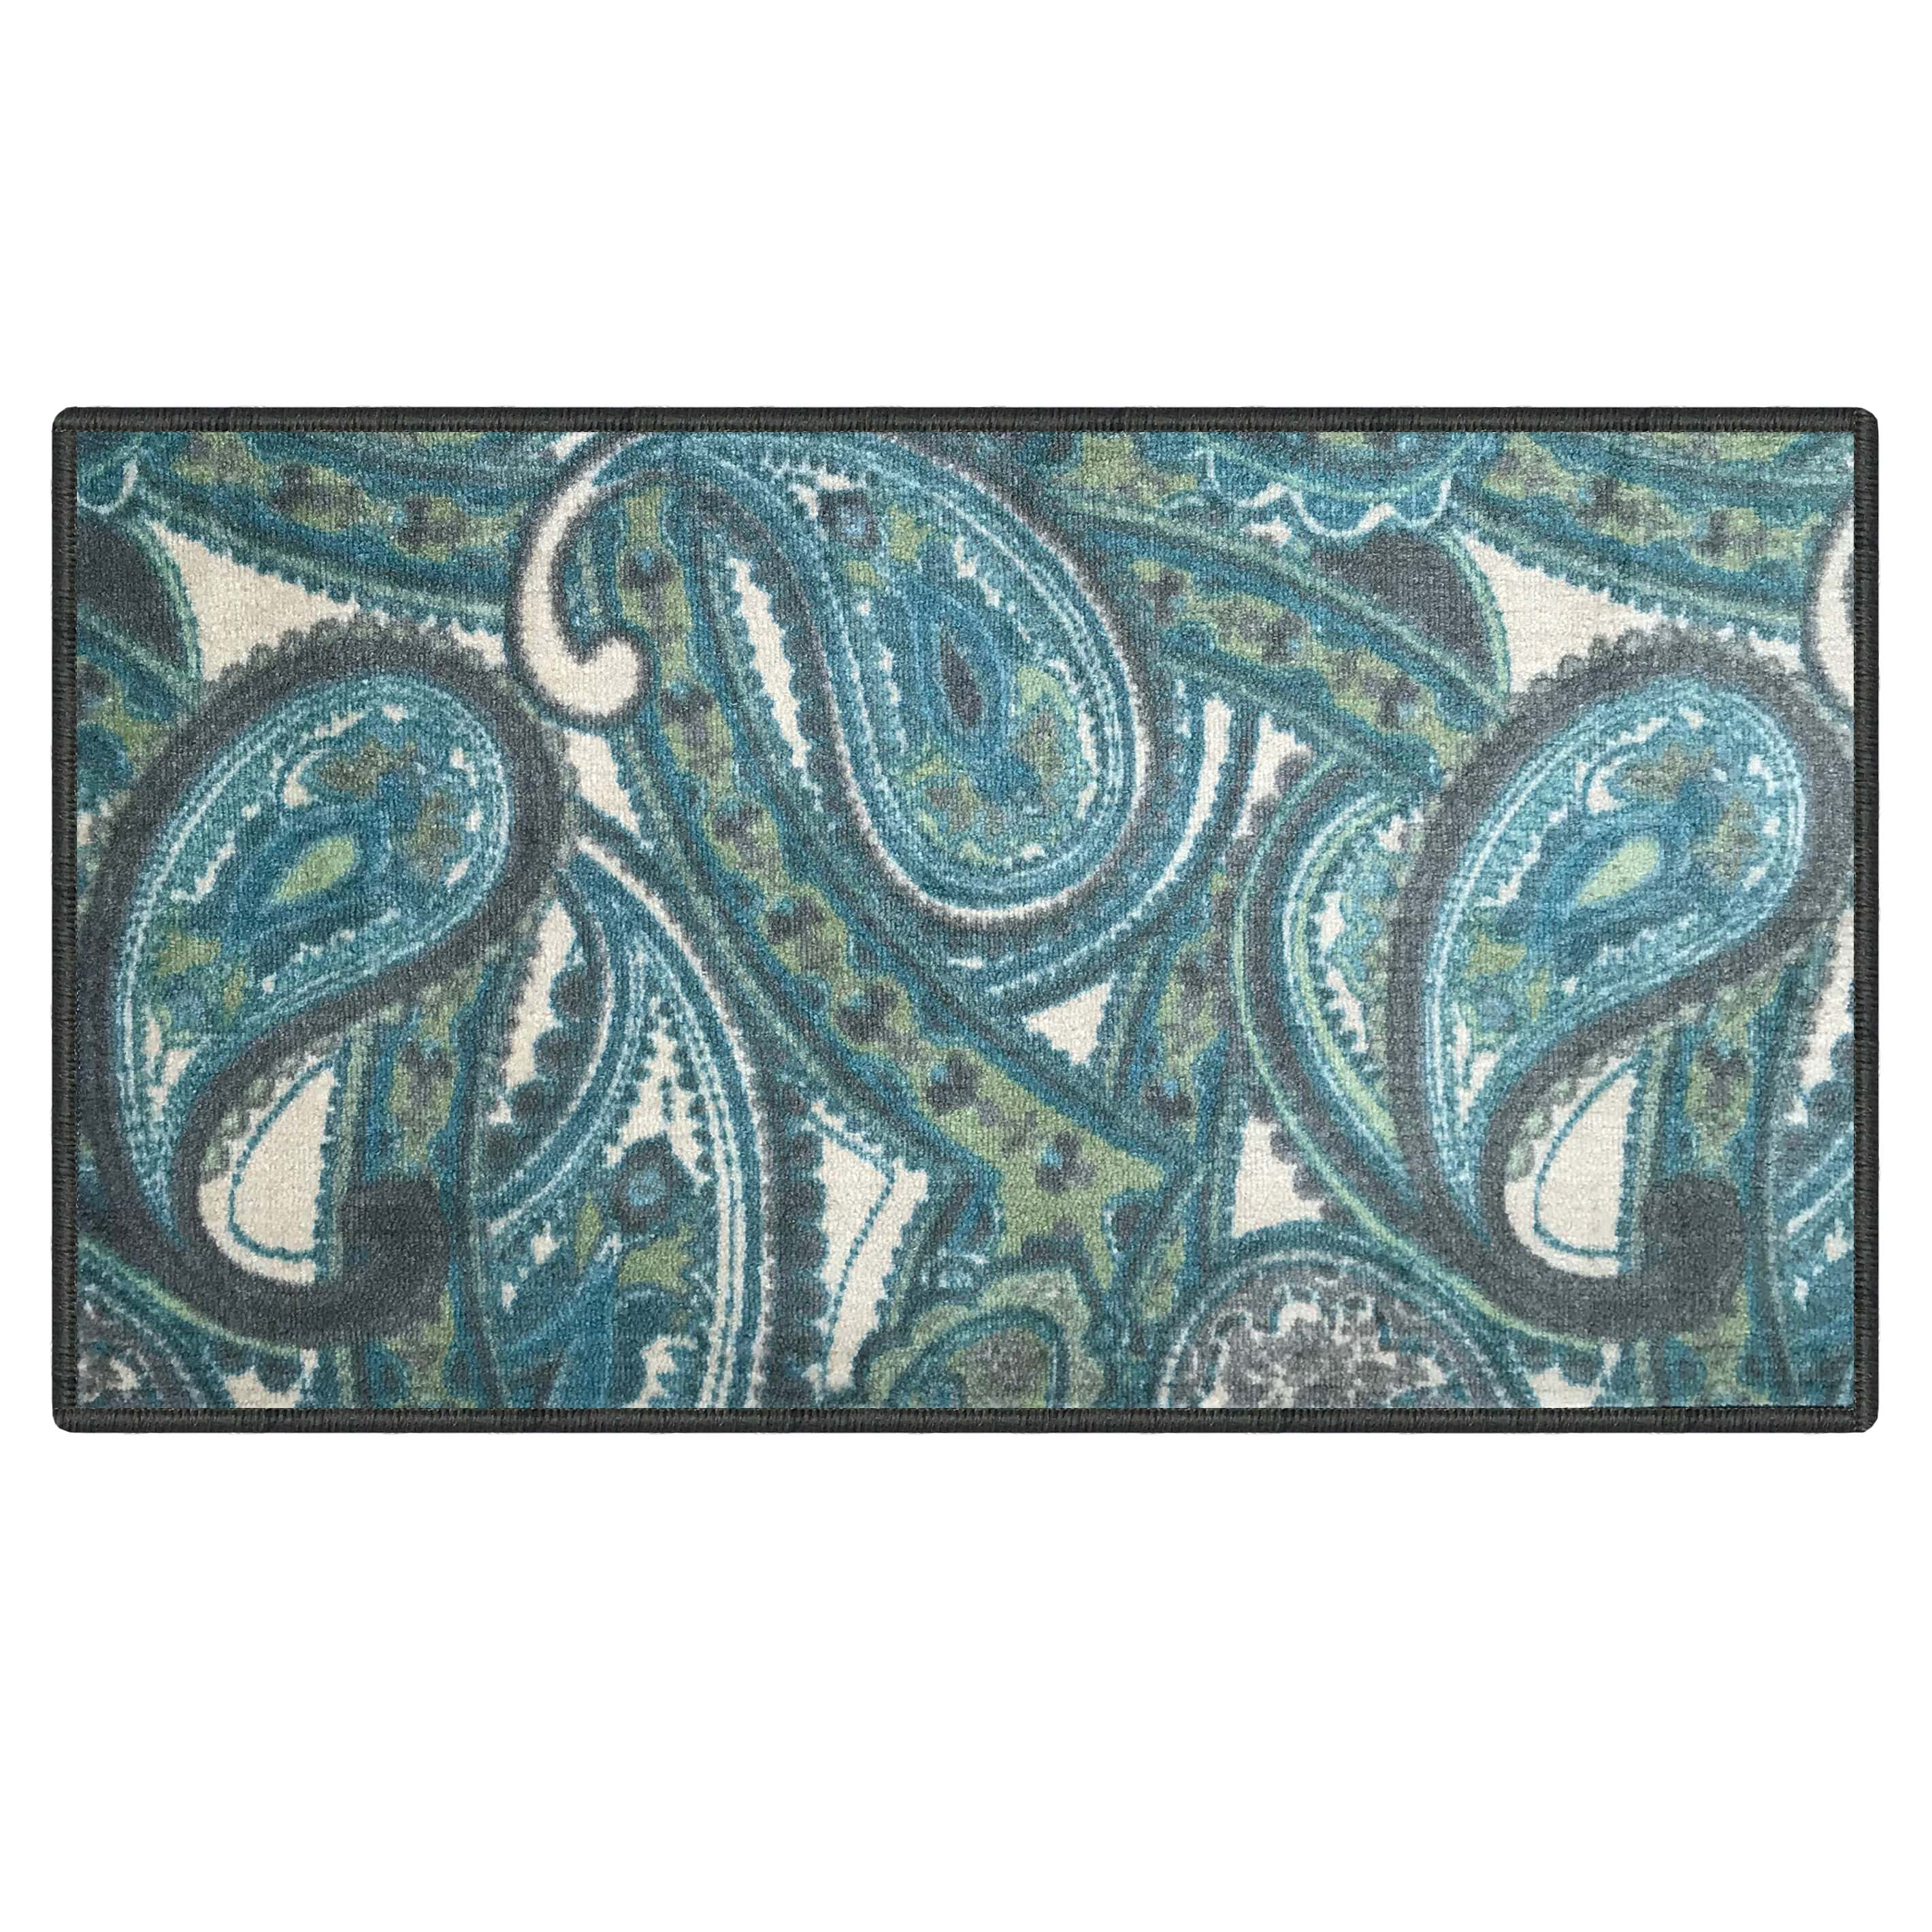 Silk and Sultans Agathe Collection Contemporary Blue Paisley Design, Pet Friendly, Non-Slip Doormat with Rubber Backing, 1'x2' Blue